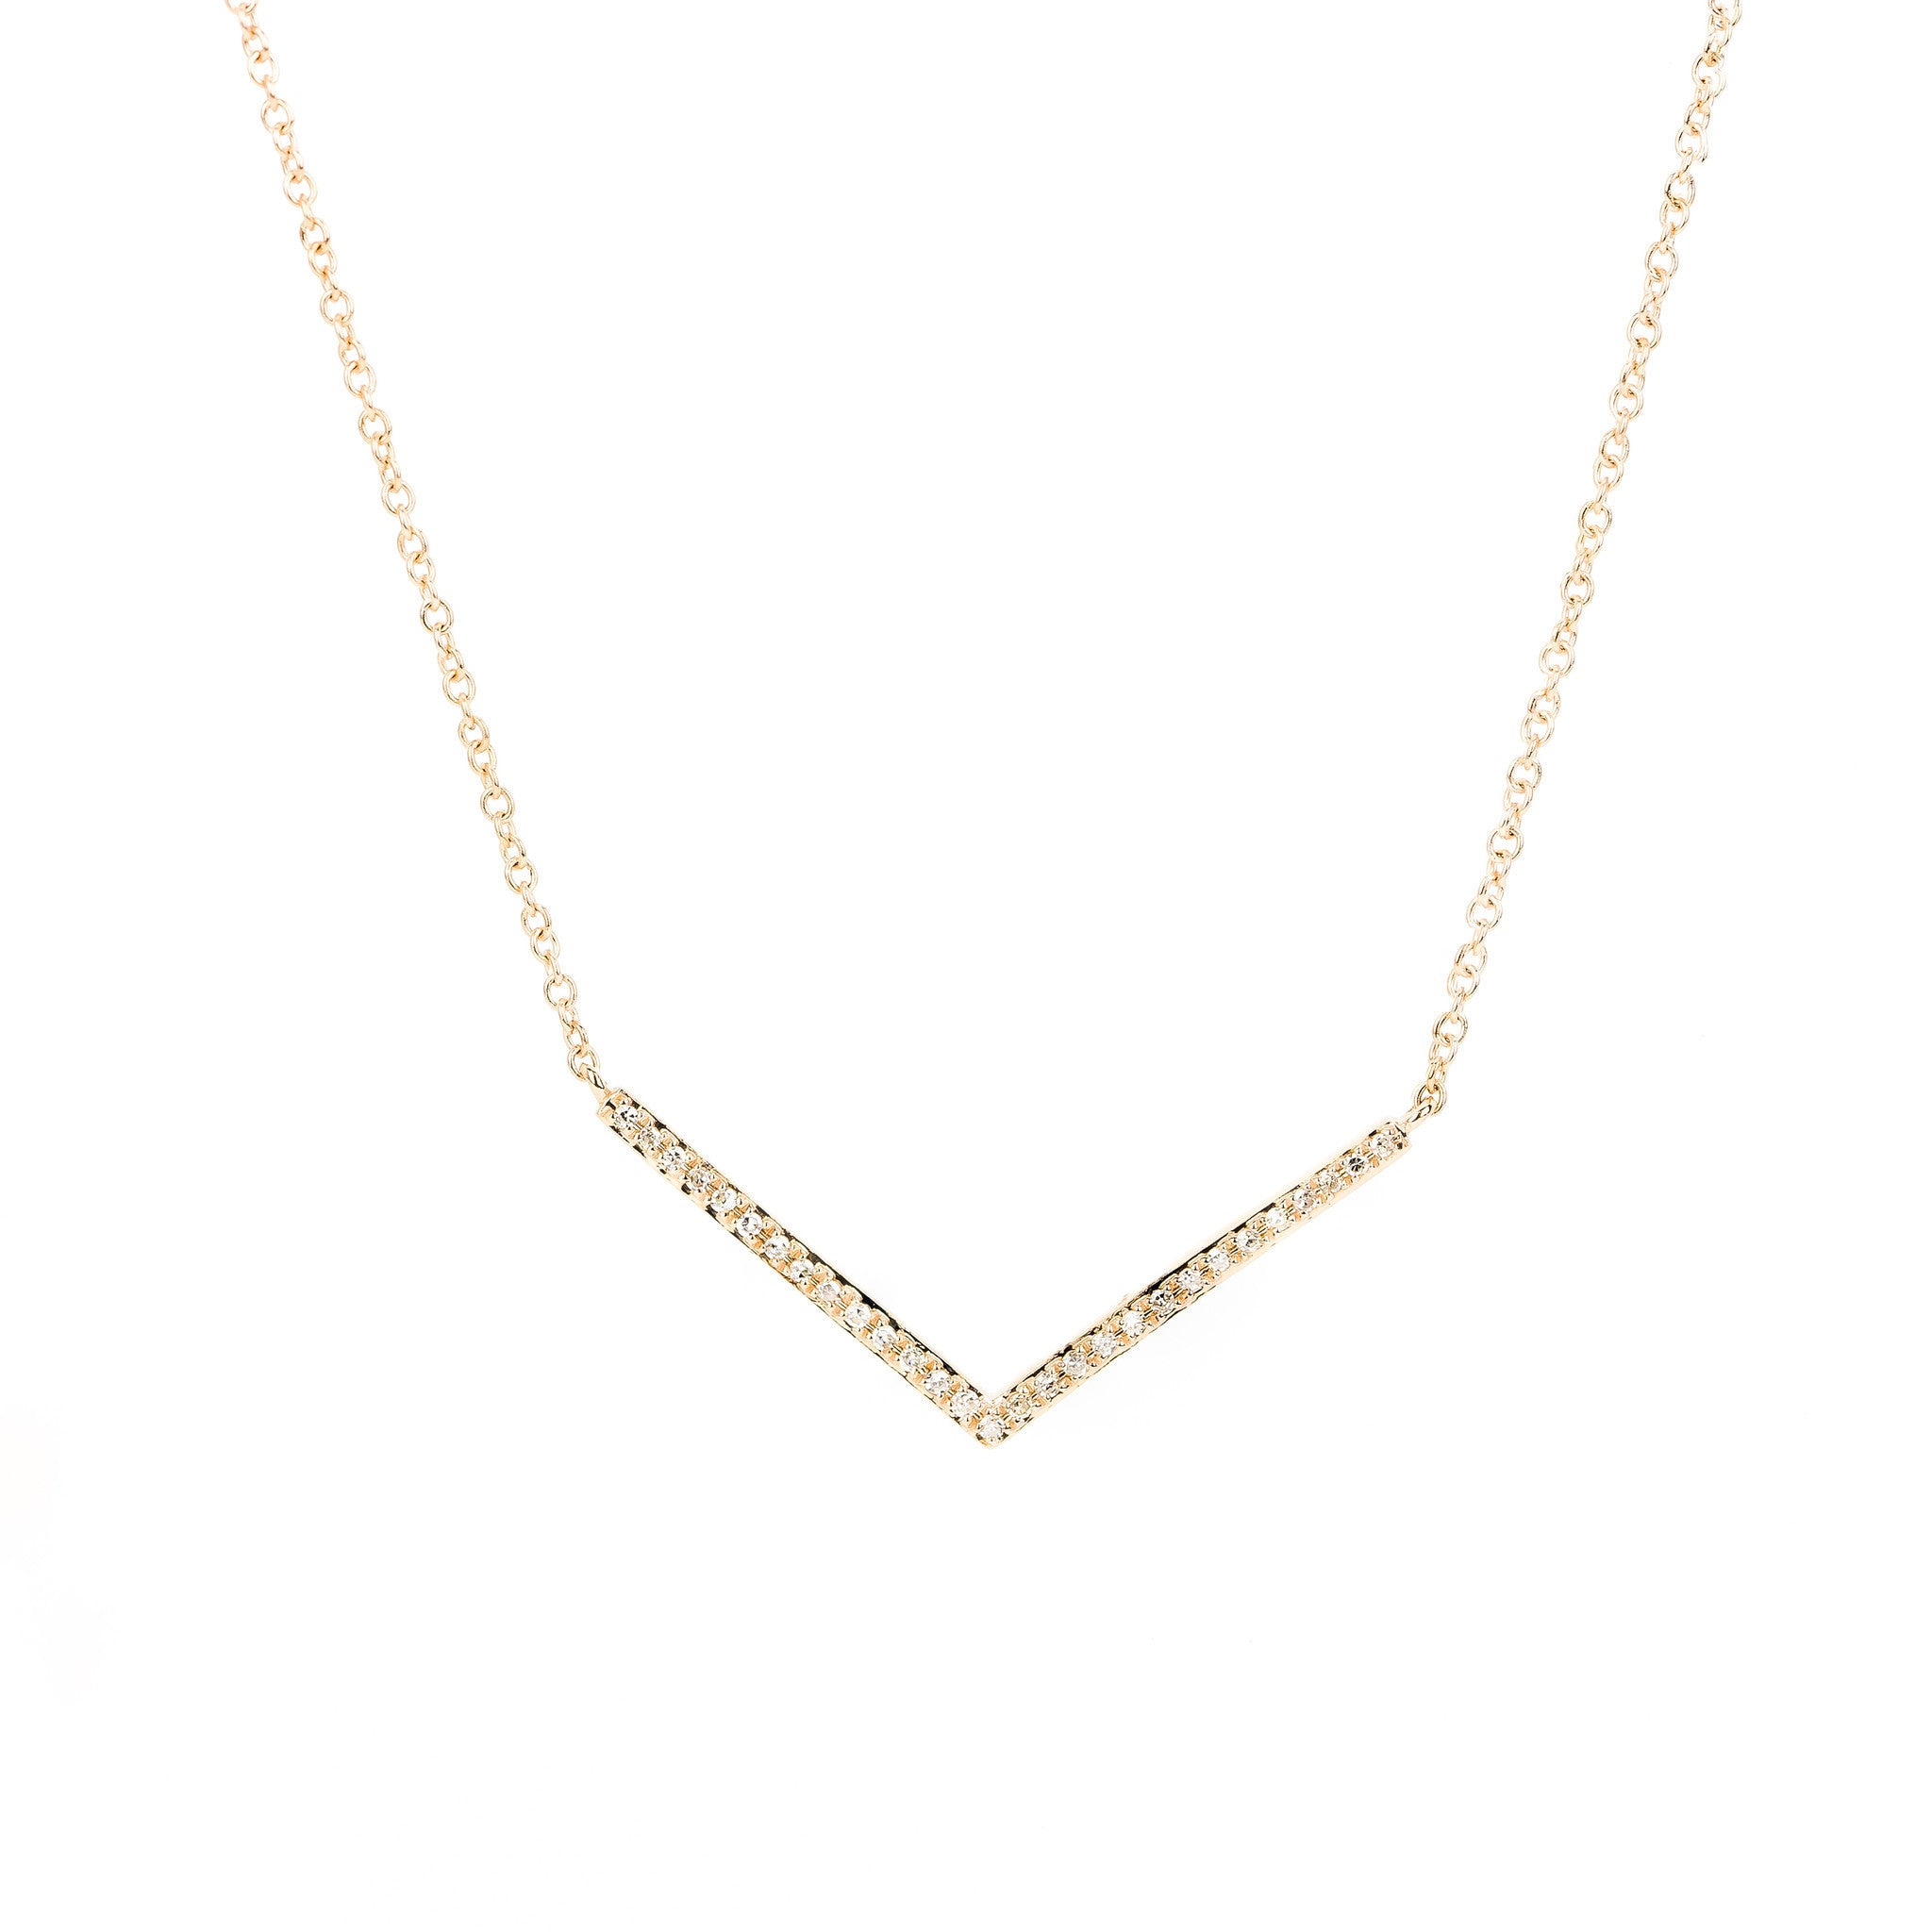 Petite Chevron Diamond Necklace by Atheria Jewelry